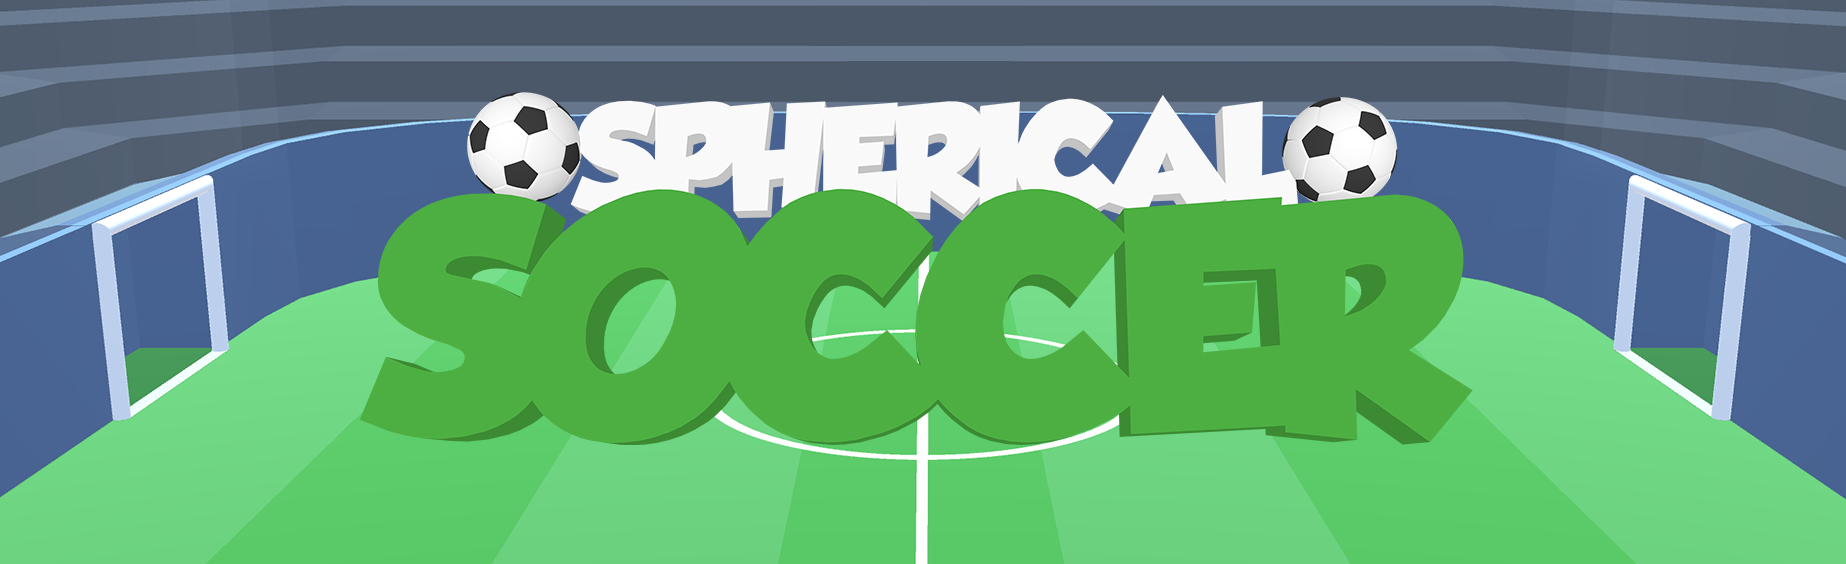 Spherical Soccer